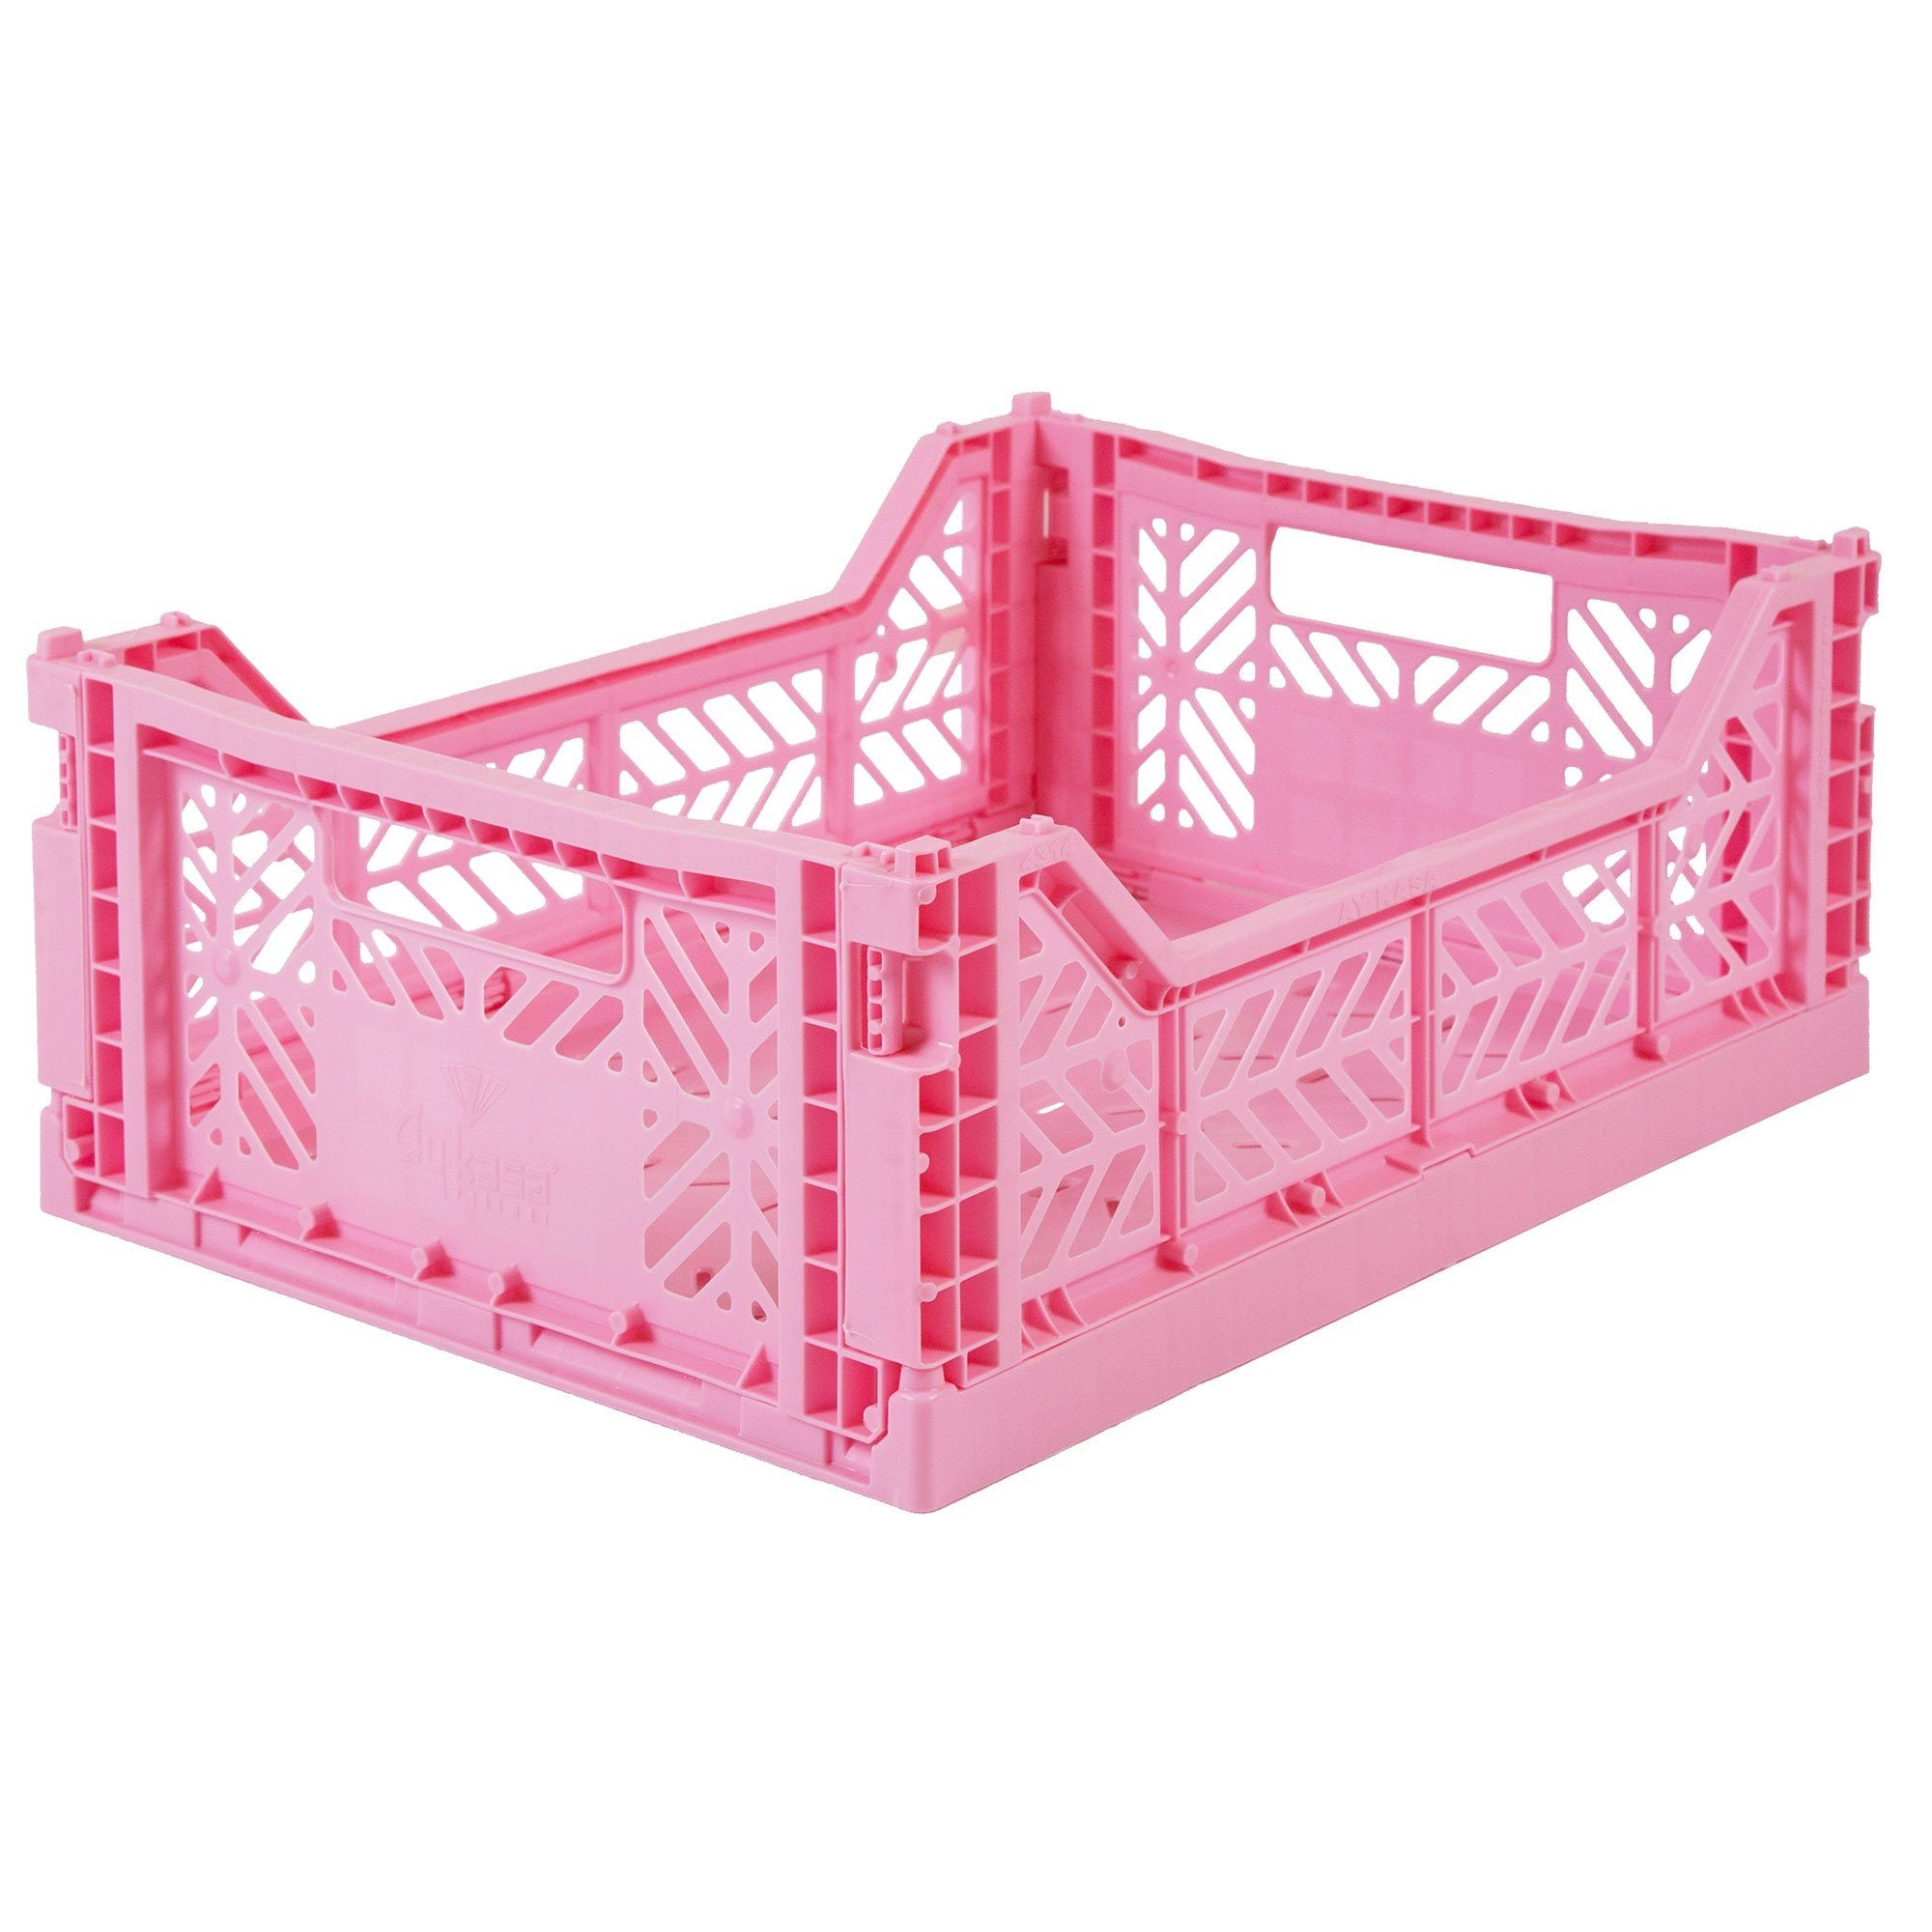 Midi Folding Crate (Baby Pink)